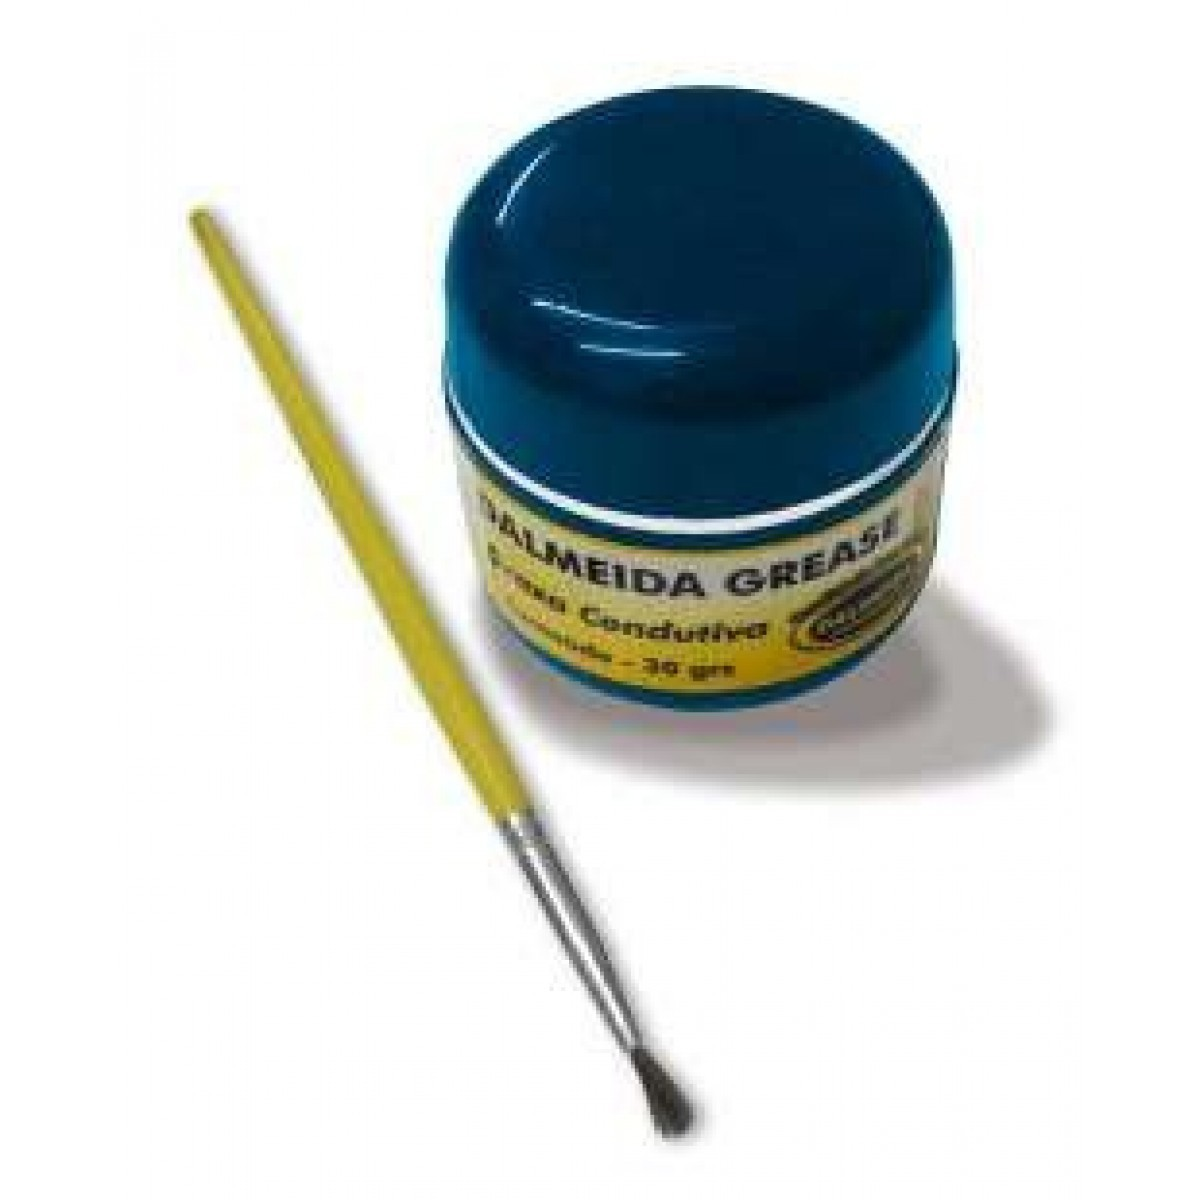 GRAXA DALMEIDA GREASE